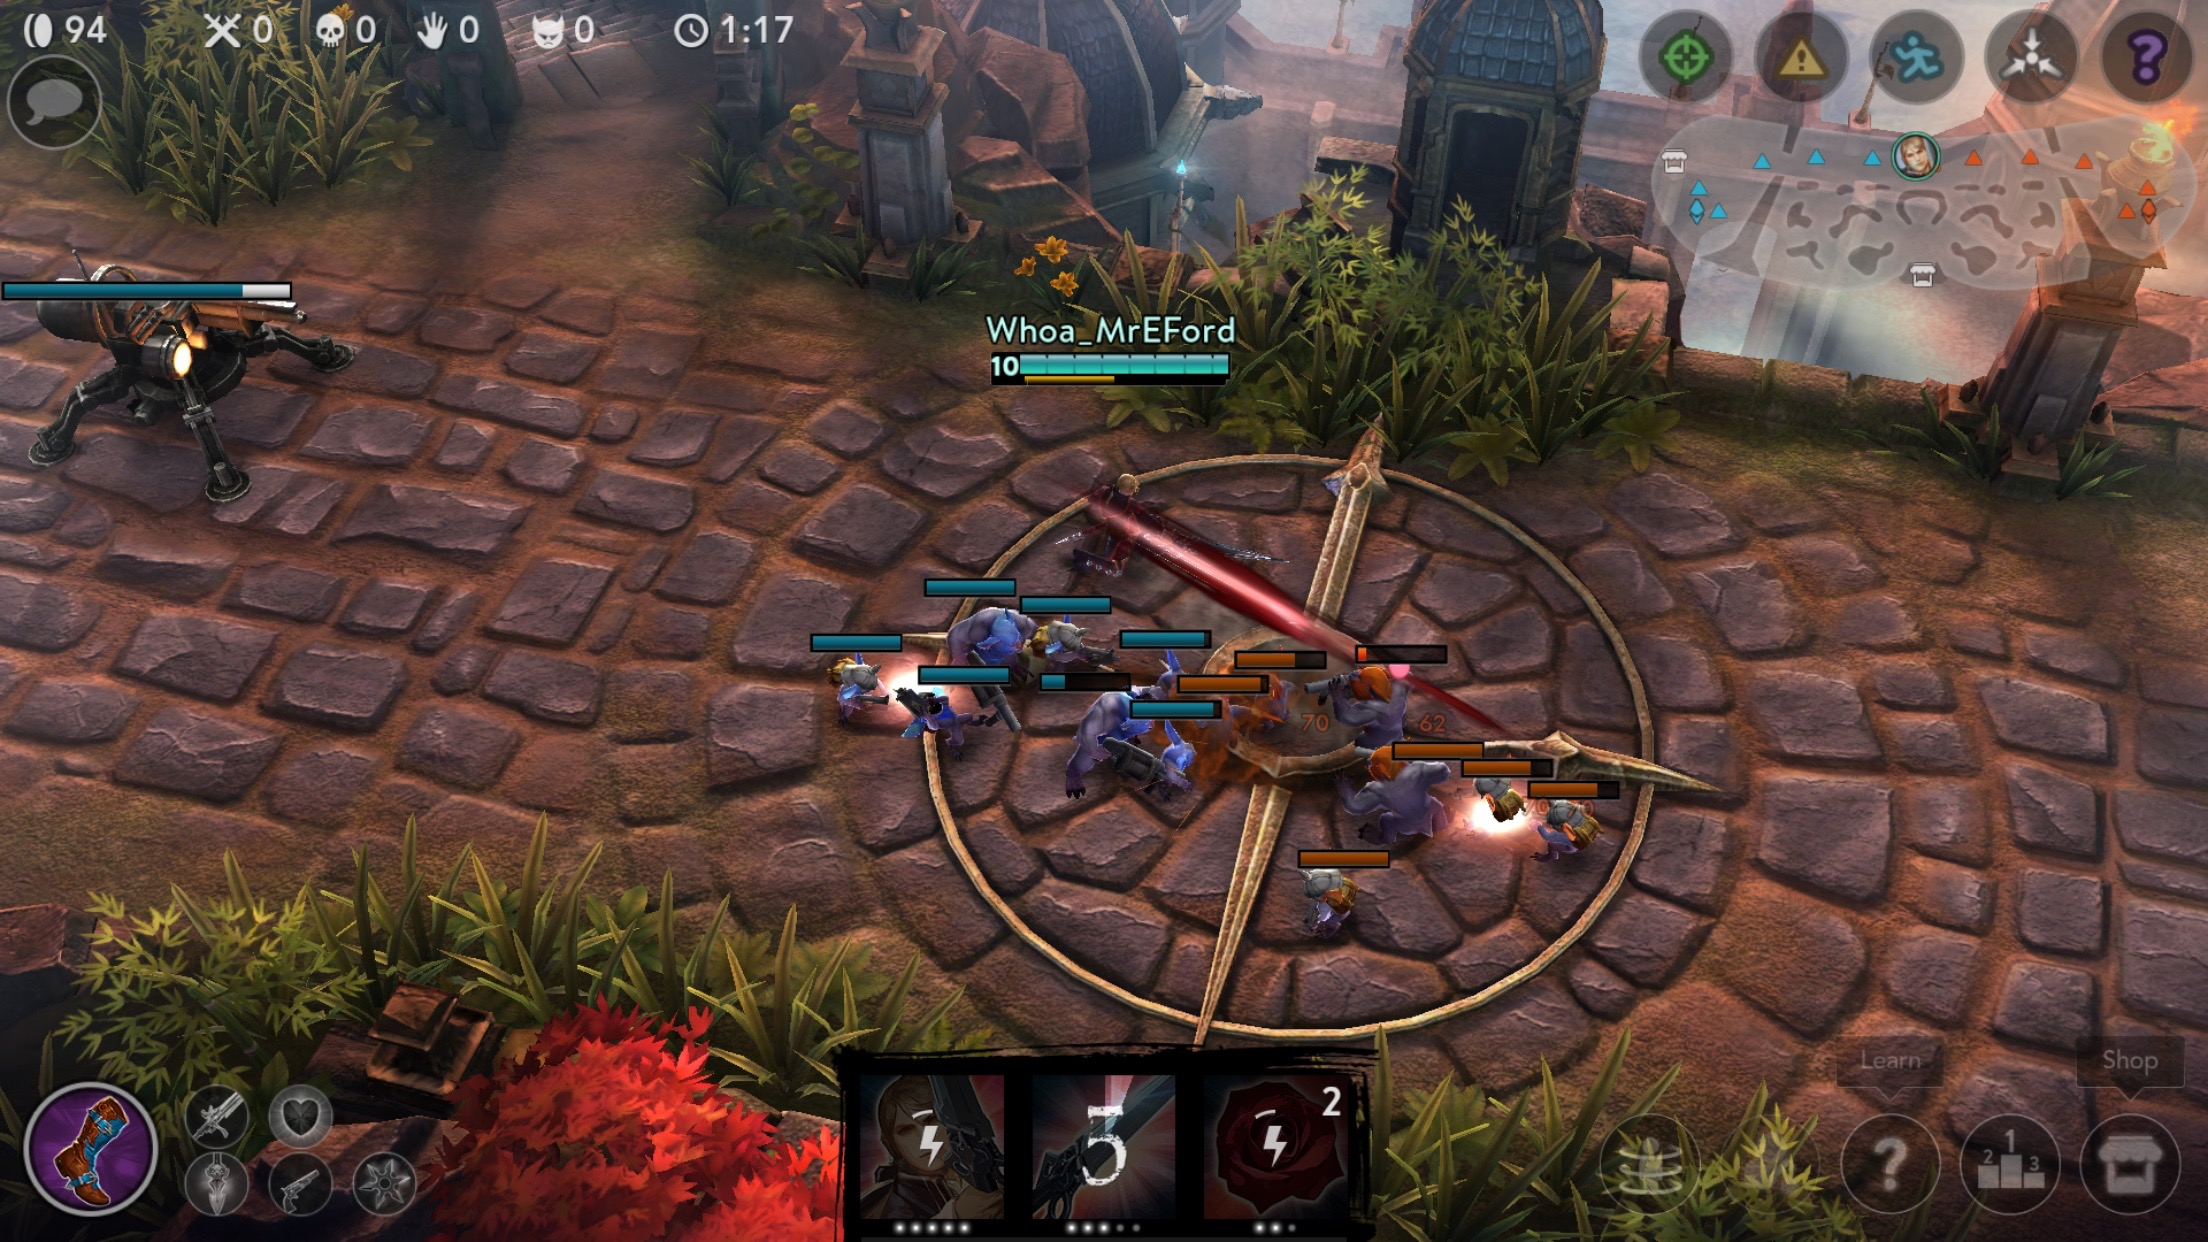 A Beginner's Guide to Blackfeather, the latest 'Vainglory' Hero